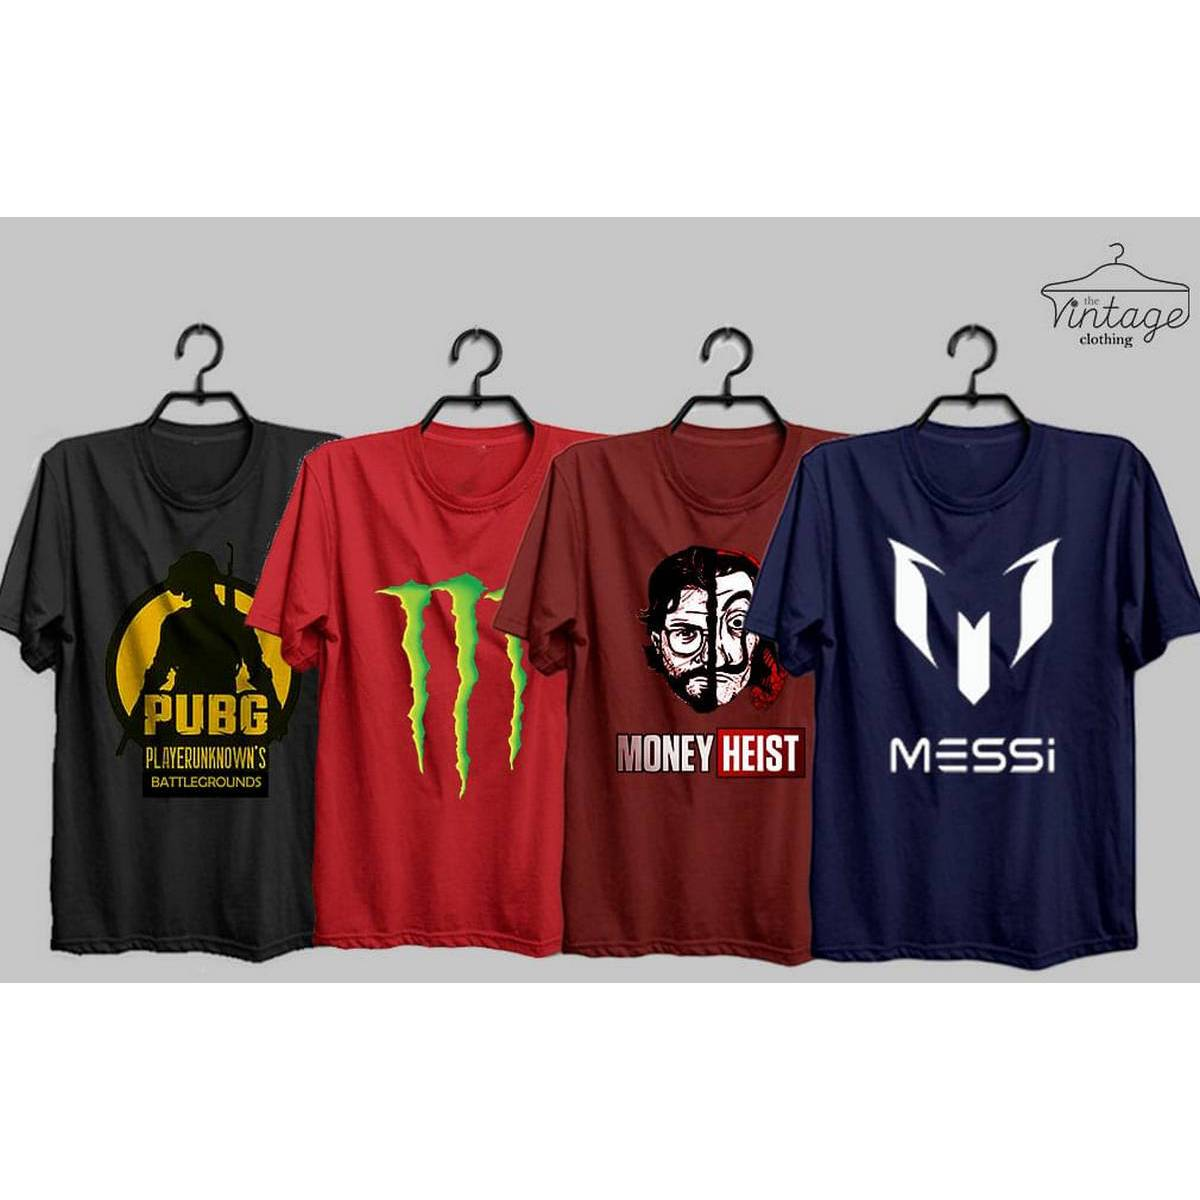 The vintage clothing pack of 4 premium printed T shirts